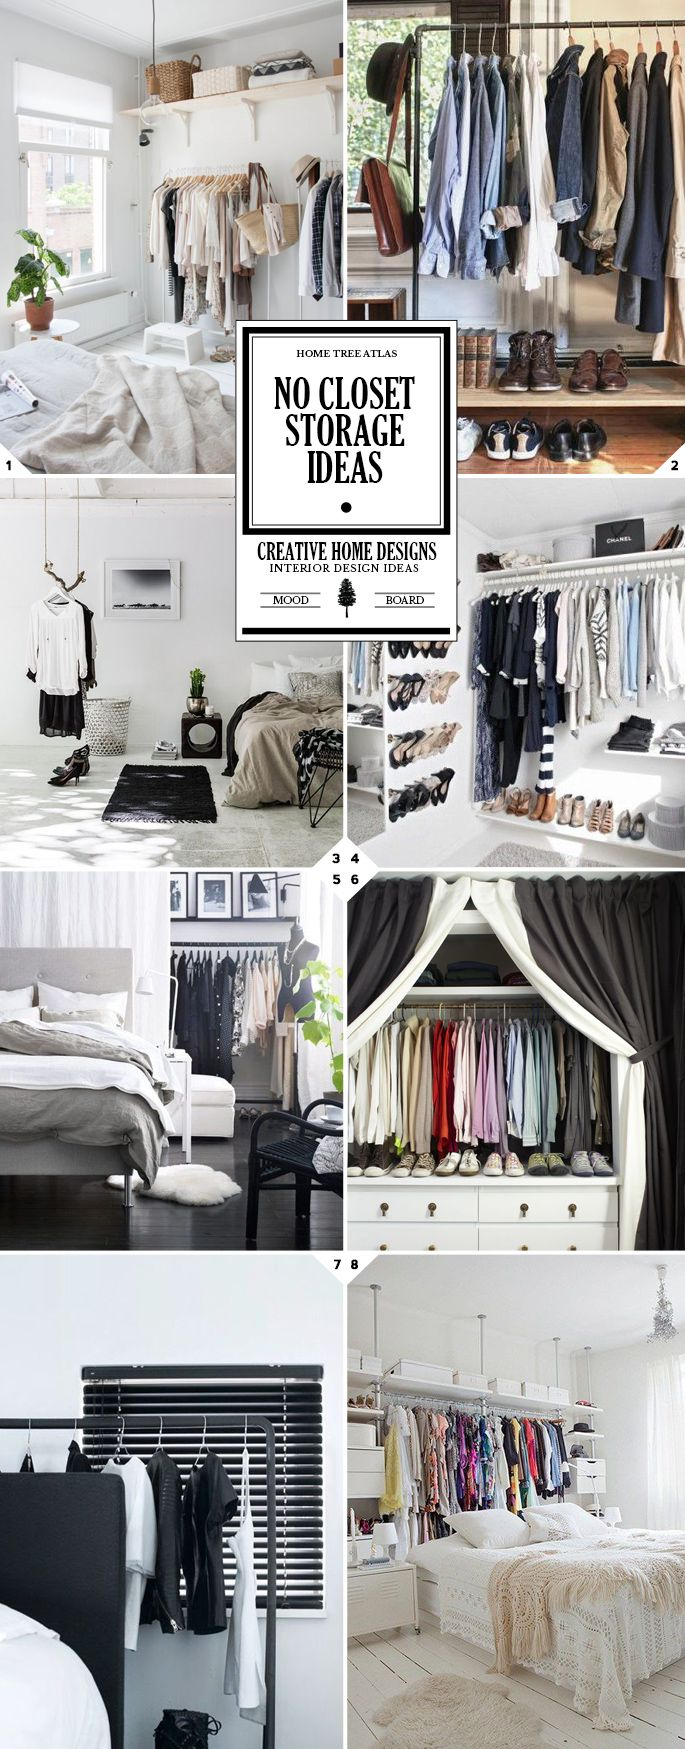 It can be a bit of a shame if your bedroom doesn't come with a closet to store away your cloths. But this just means you need to get a little creative when it comes to finding no closet solutions. You can even take it a step further and turn your open closet into a […]